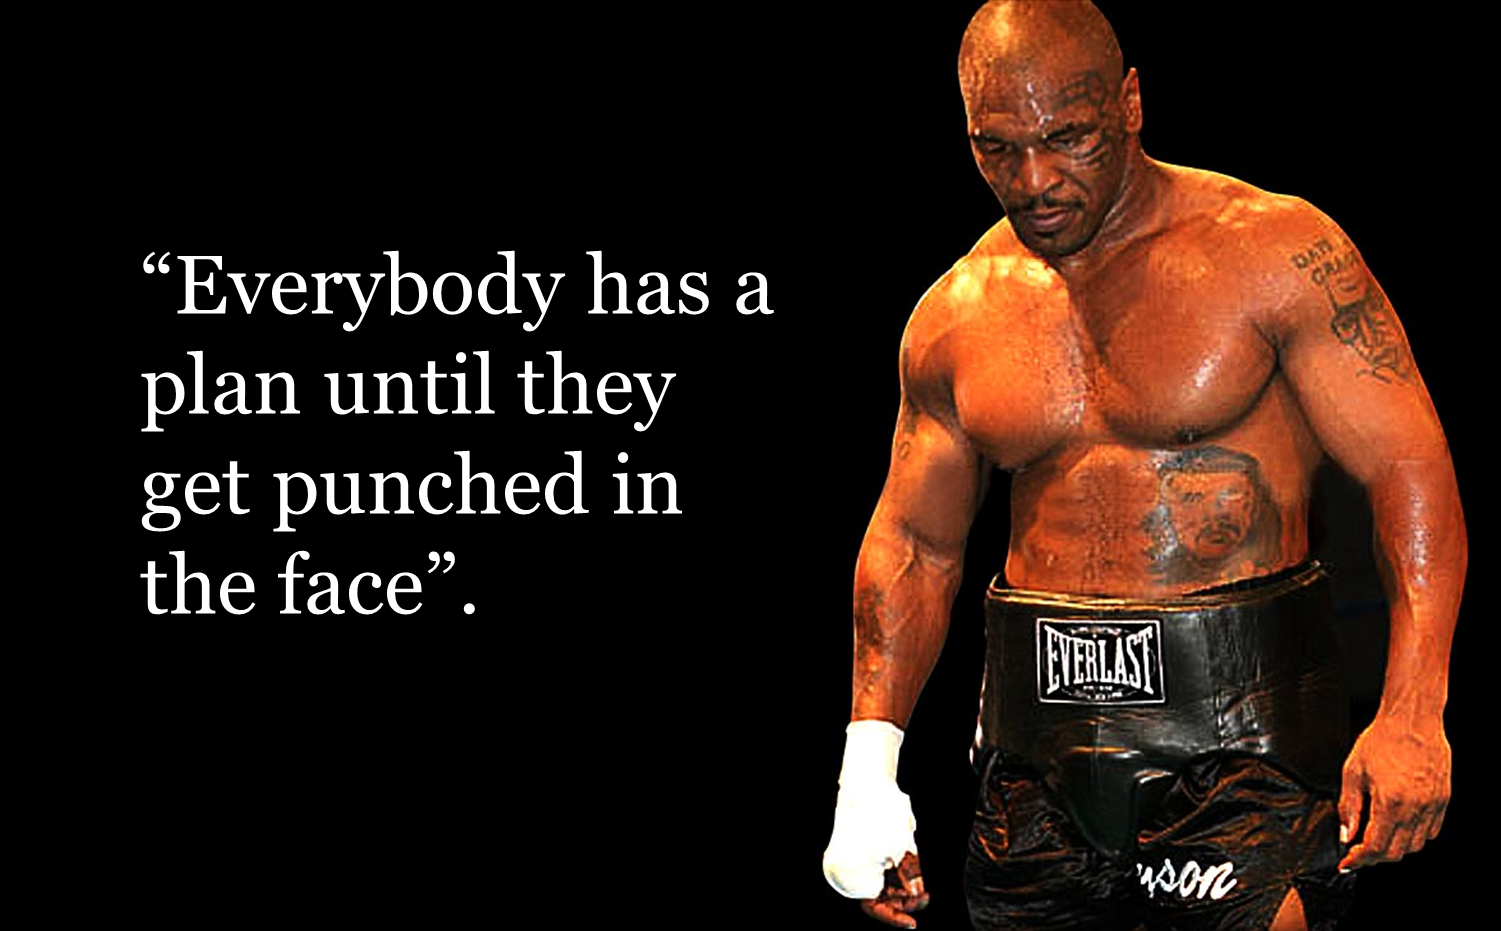 Everybody Has A Plan Until They Get Punched In The Face ...